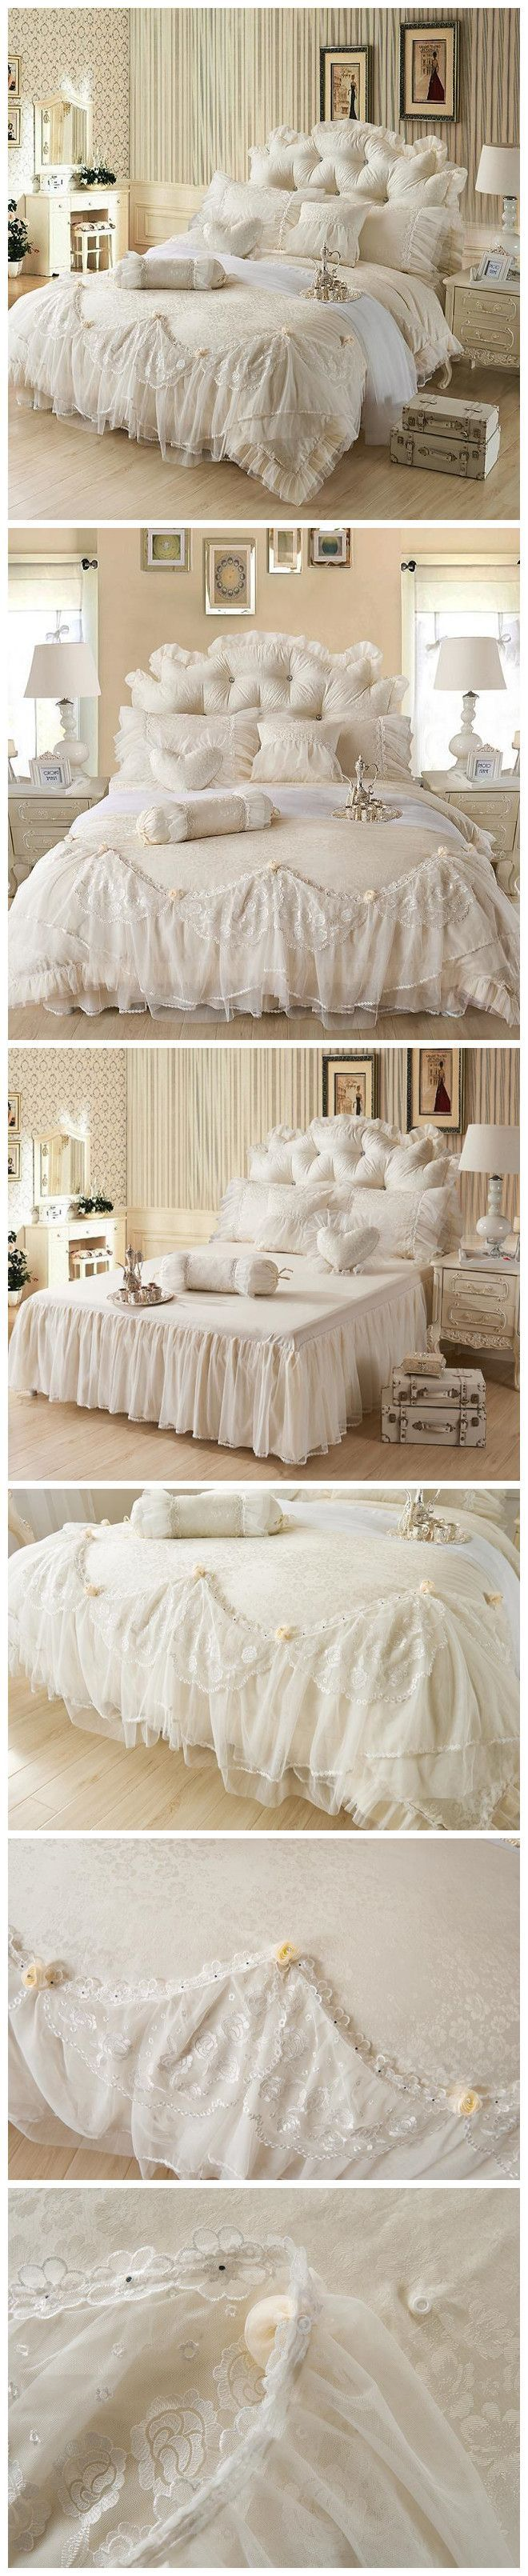 Home amp garden gt bedding gt comforters amp sets gt see more 7 pc faux fur - See More White Lace Ruffle Wedding Bedding Sets Queen Size Korean Princess Duvet Cover Sets Rose Comforter Sets